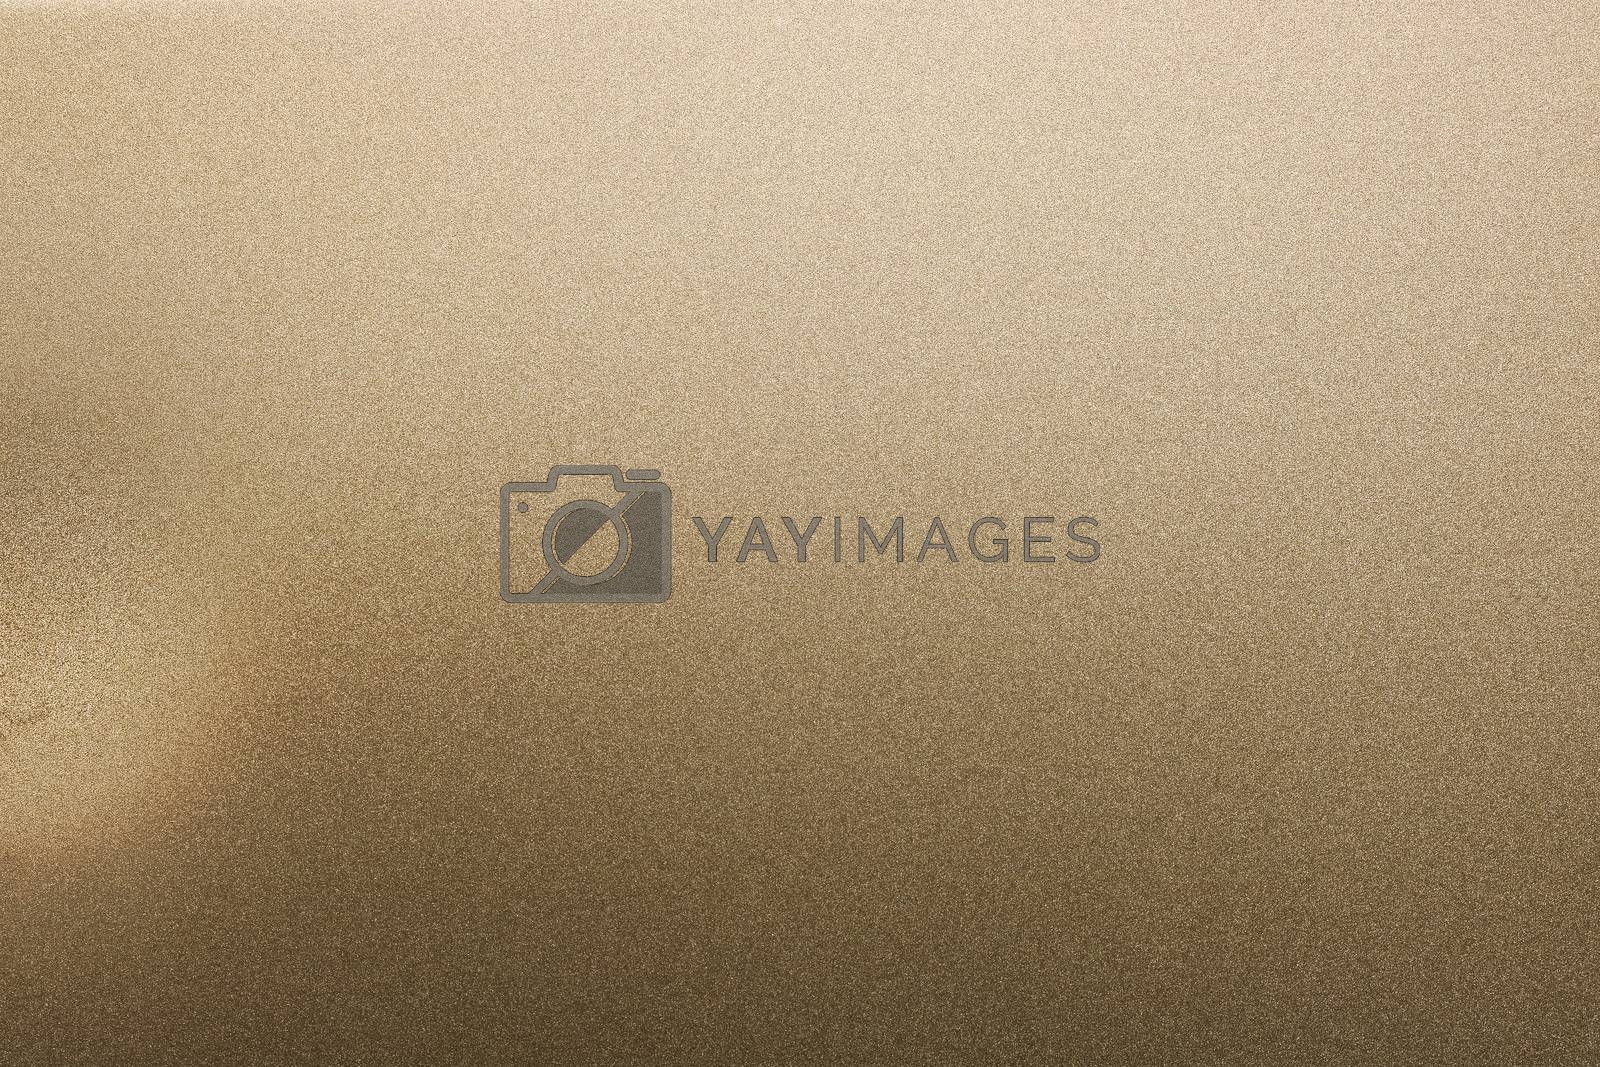 Royalty free image of Dirty on brushed bronze metal plate, abstract texture background by mouu007